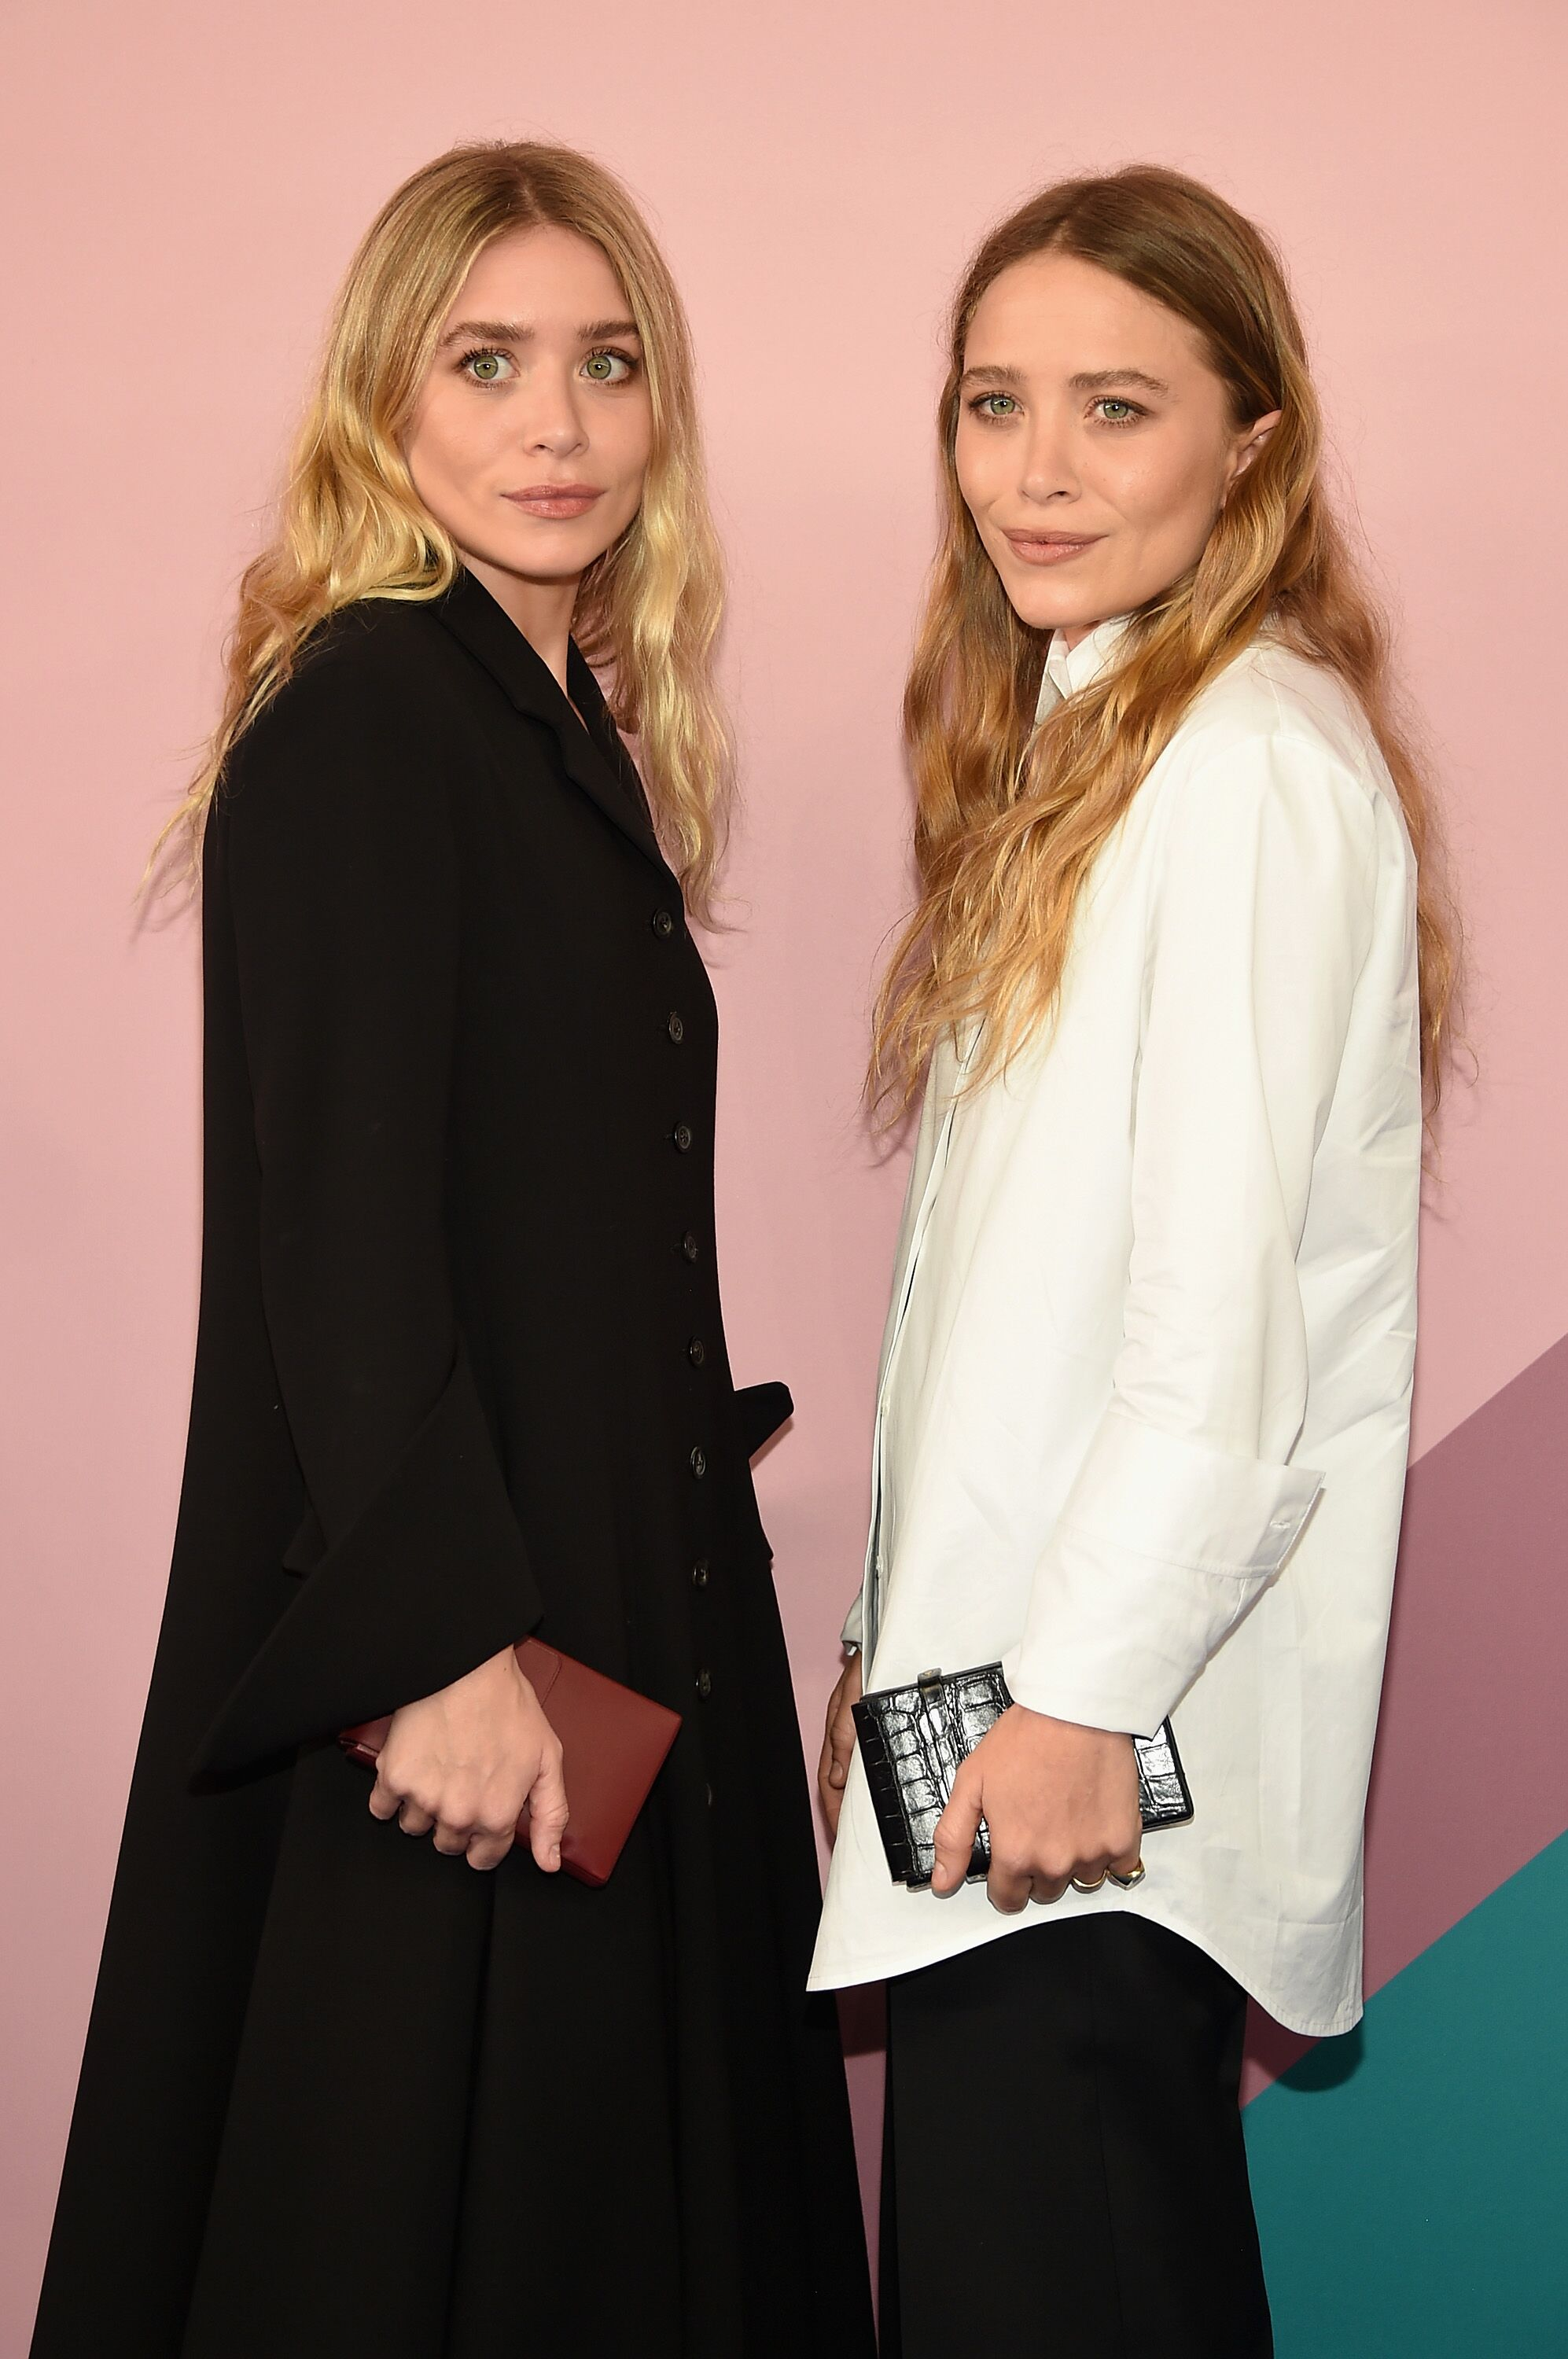 Ashley Olsen and Mary-Kate Olsen at the 2017 CFDA Fashion Awards in New York | Source: Getty Images